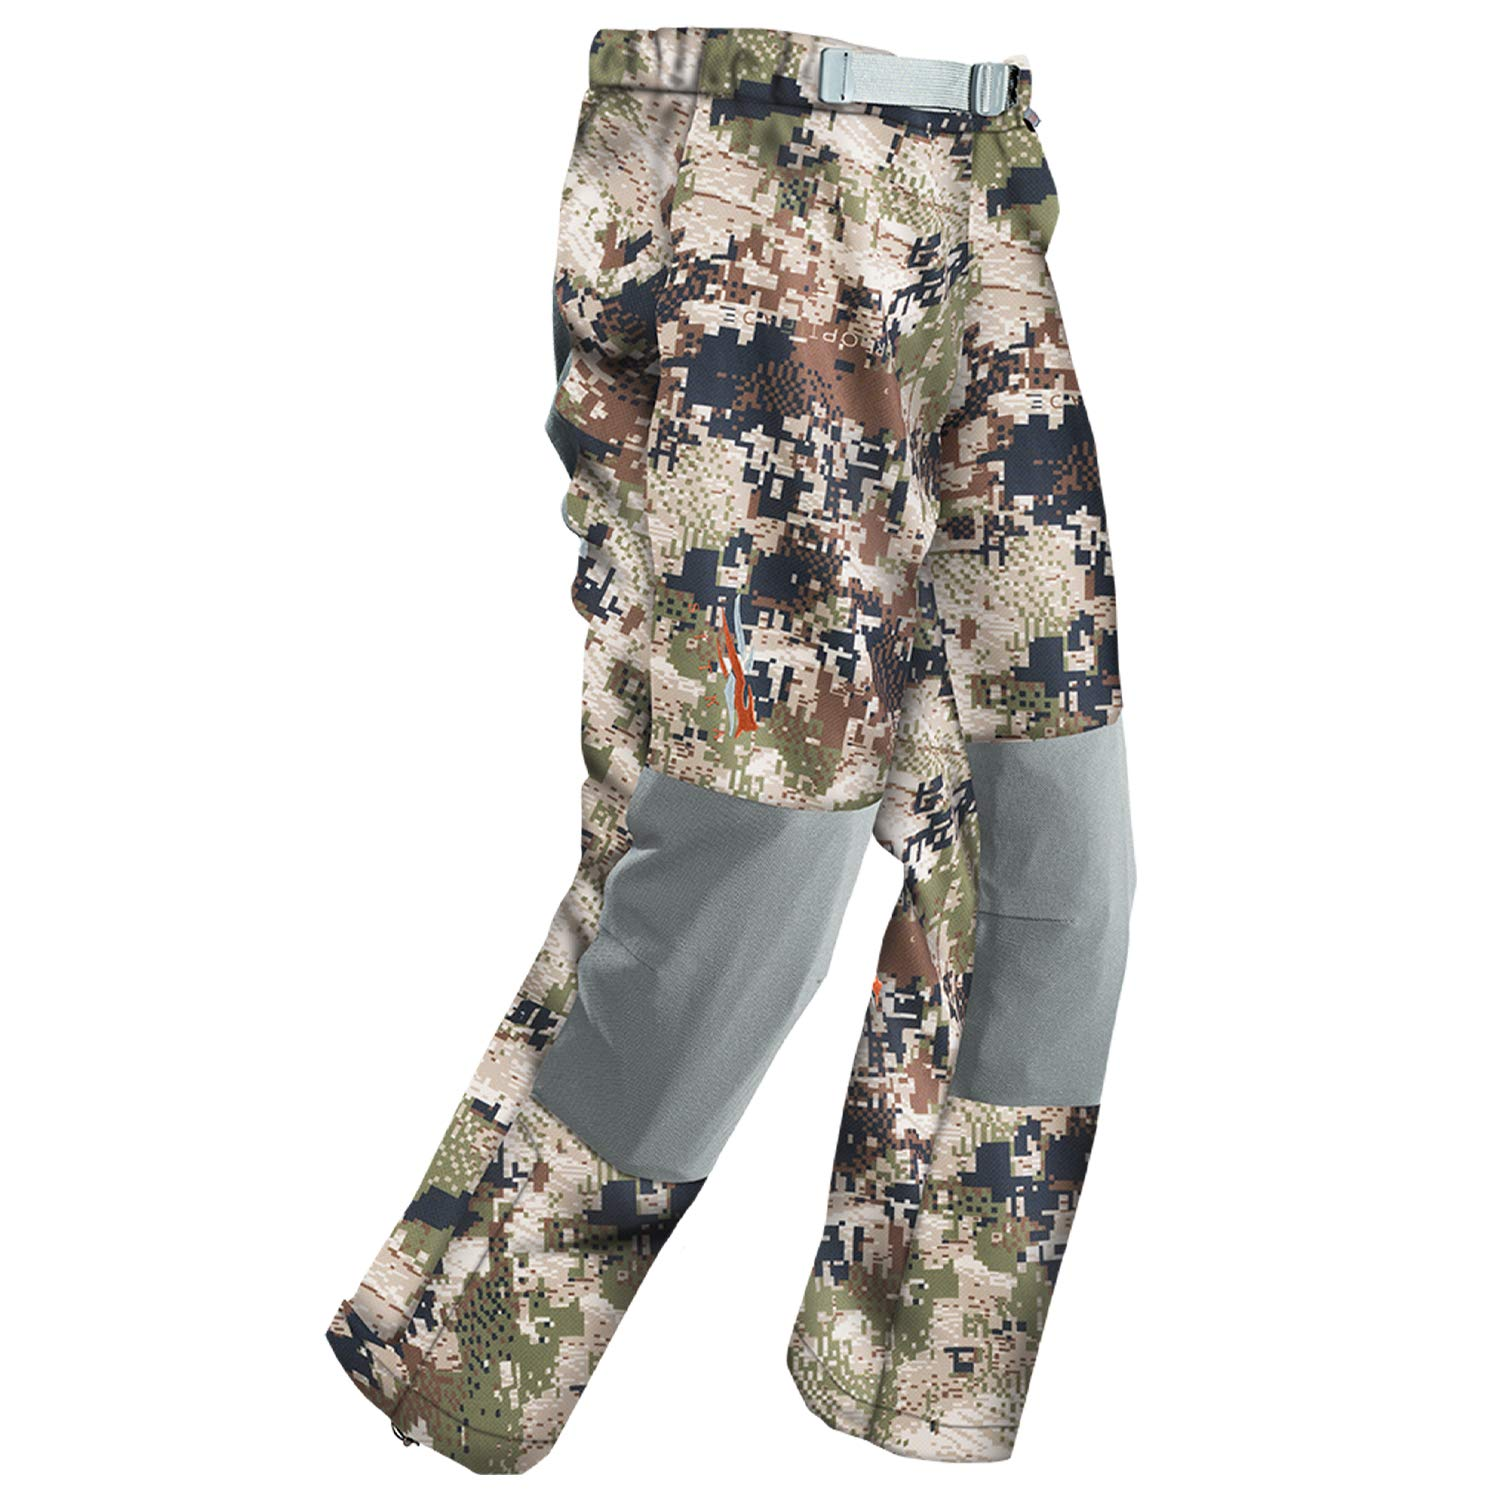 SITKA Gear New for 2019 Youth Cyclone Pant Optifade Subalpine Youth Large by SITKA